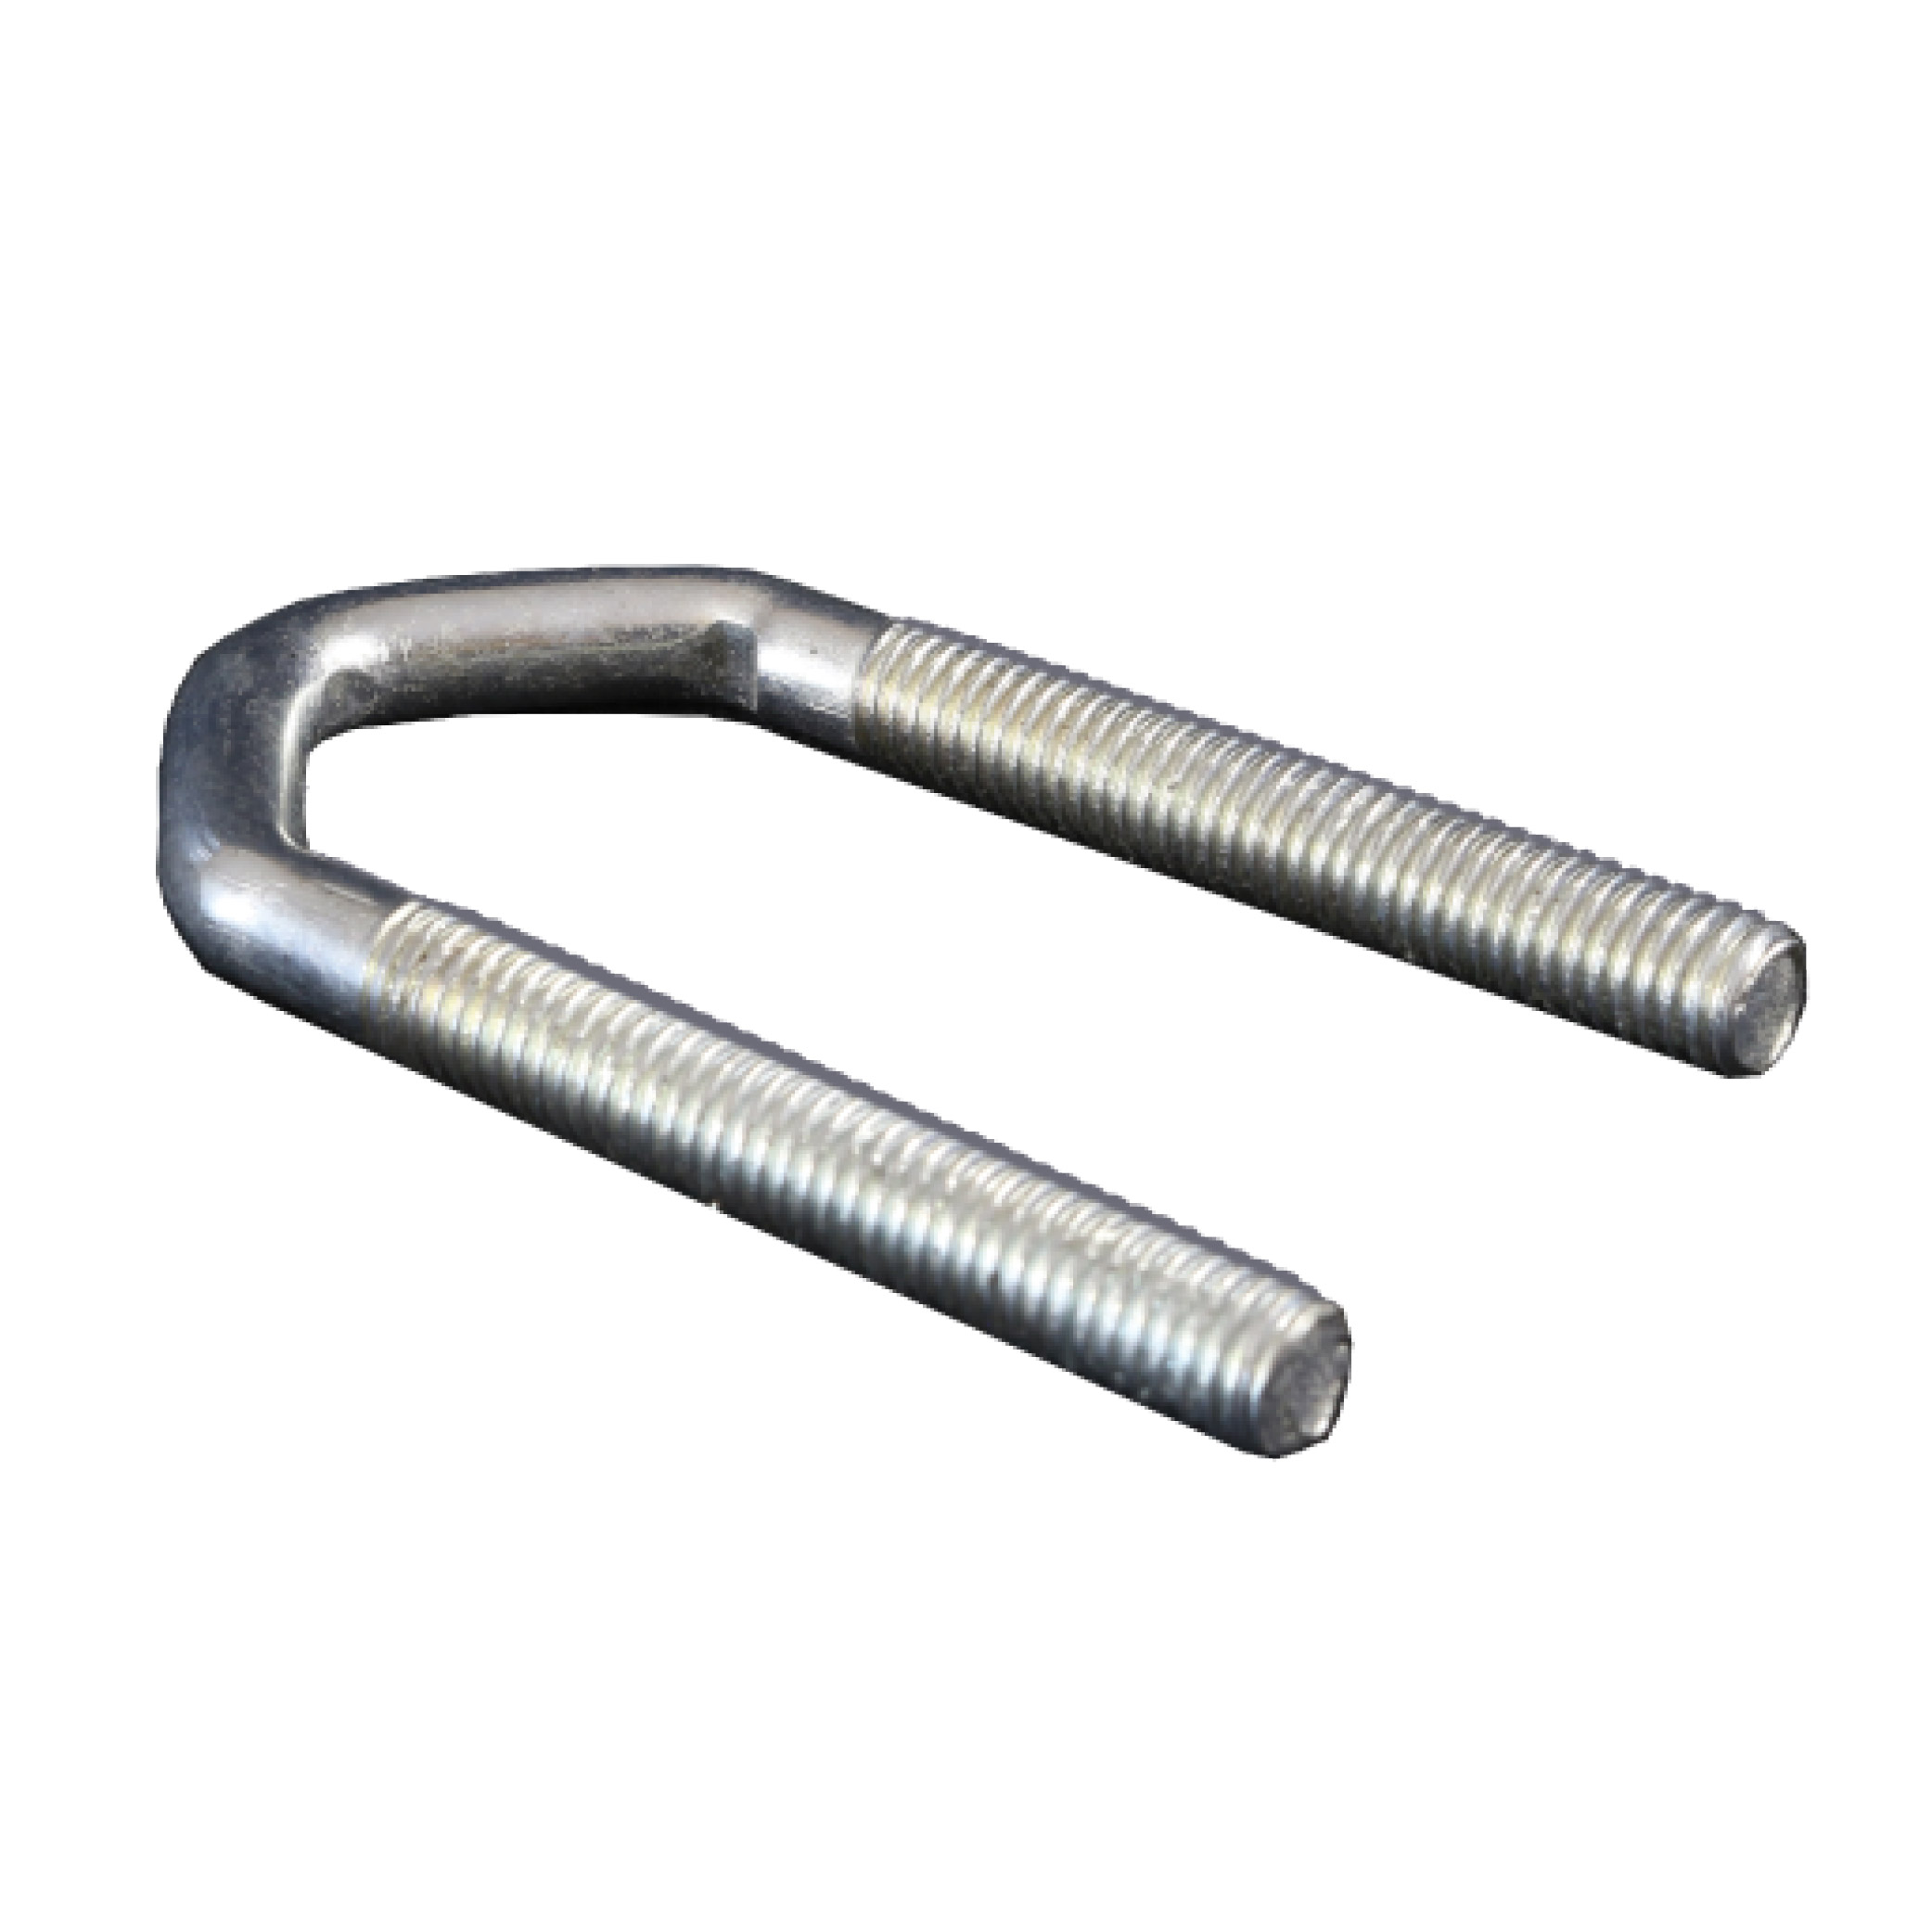 TV Bolts / Angle Iron Bolts | Accuthread Products